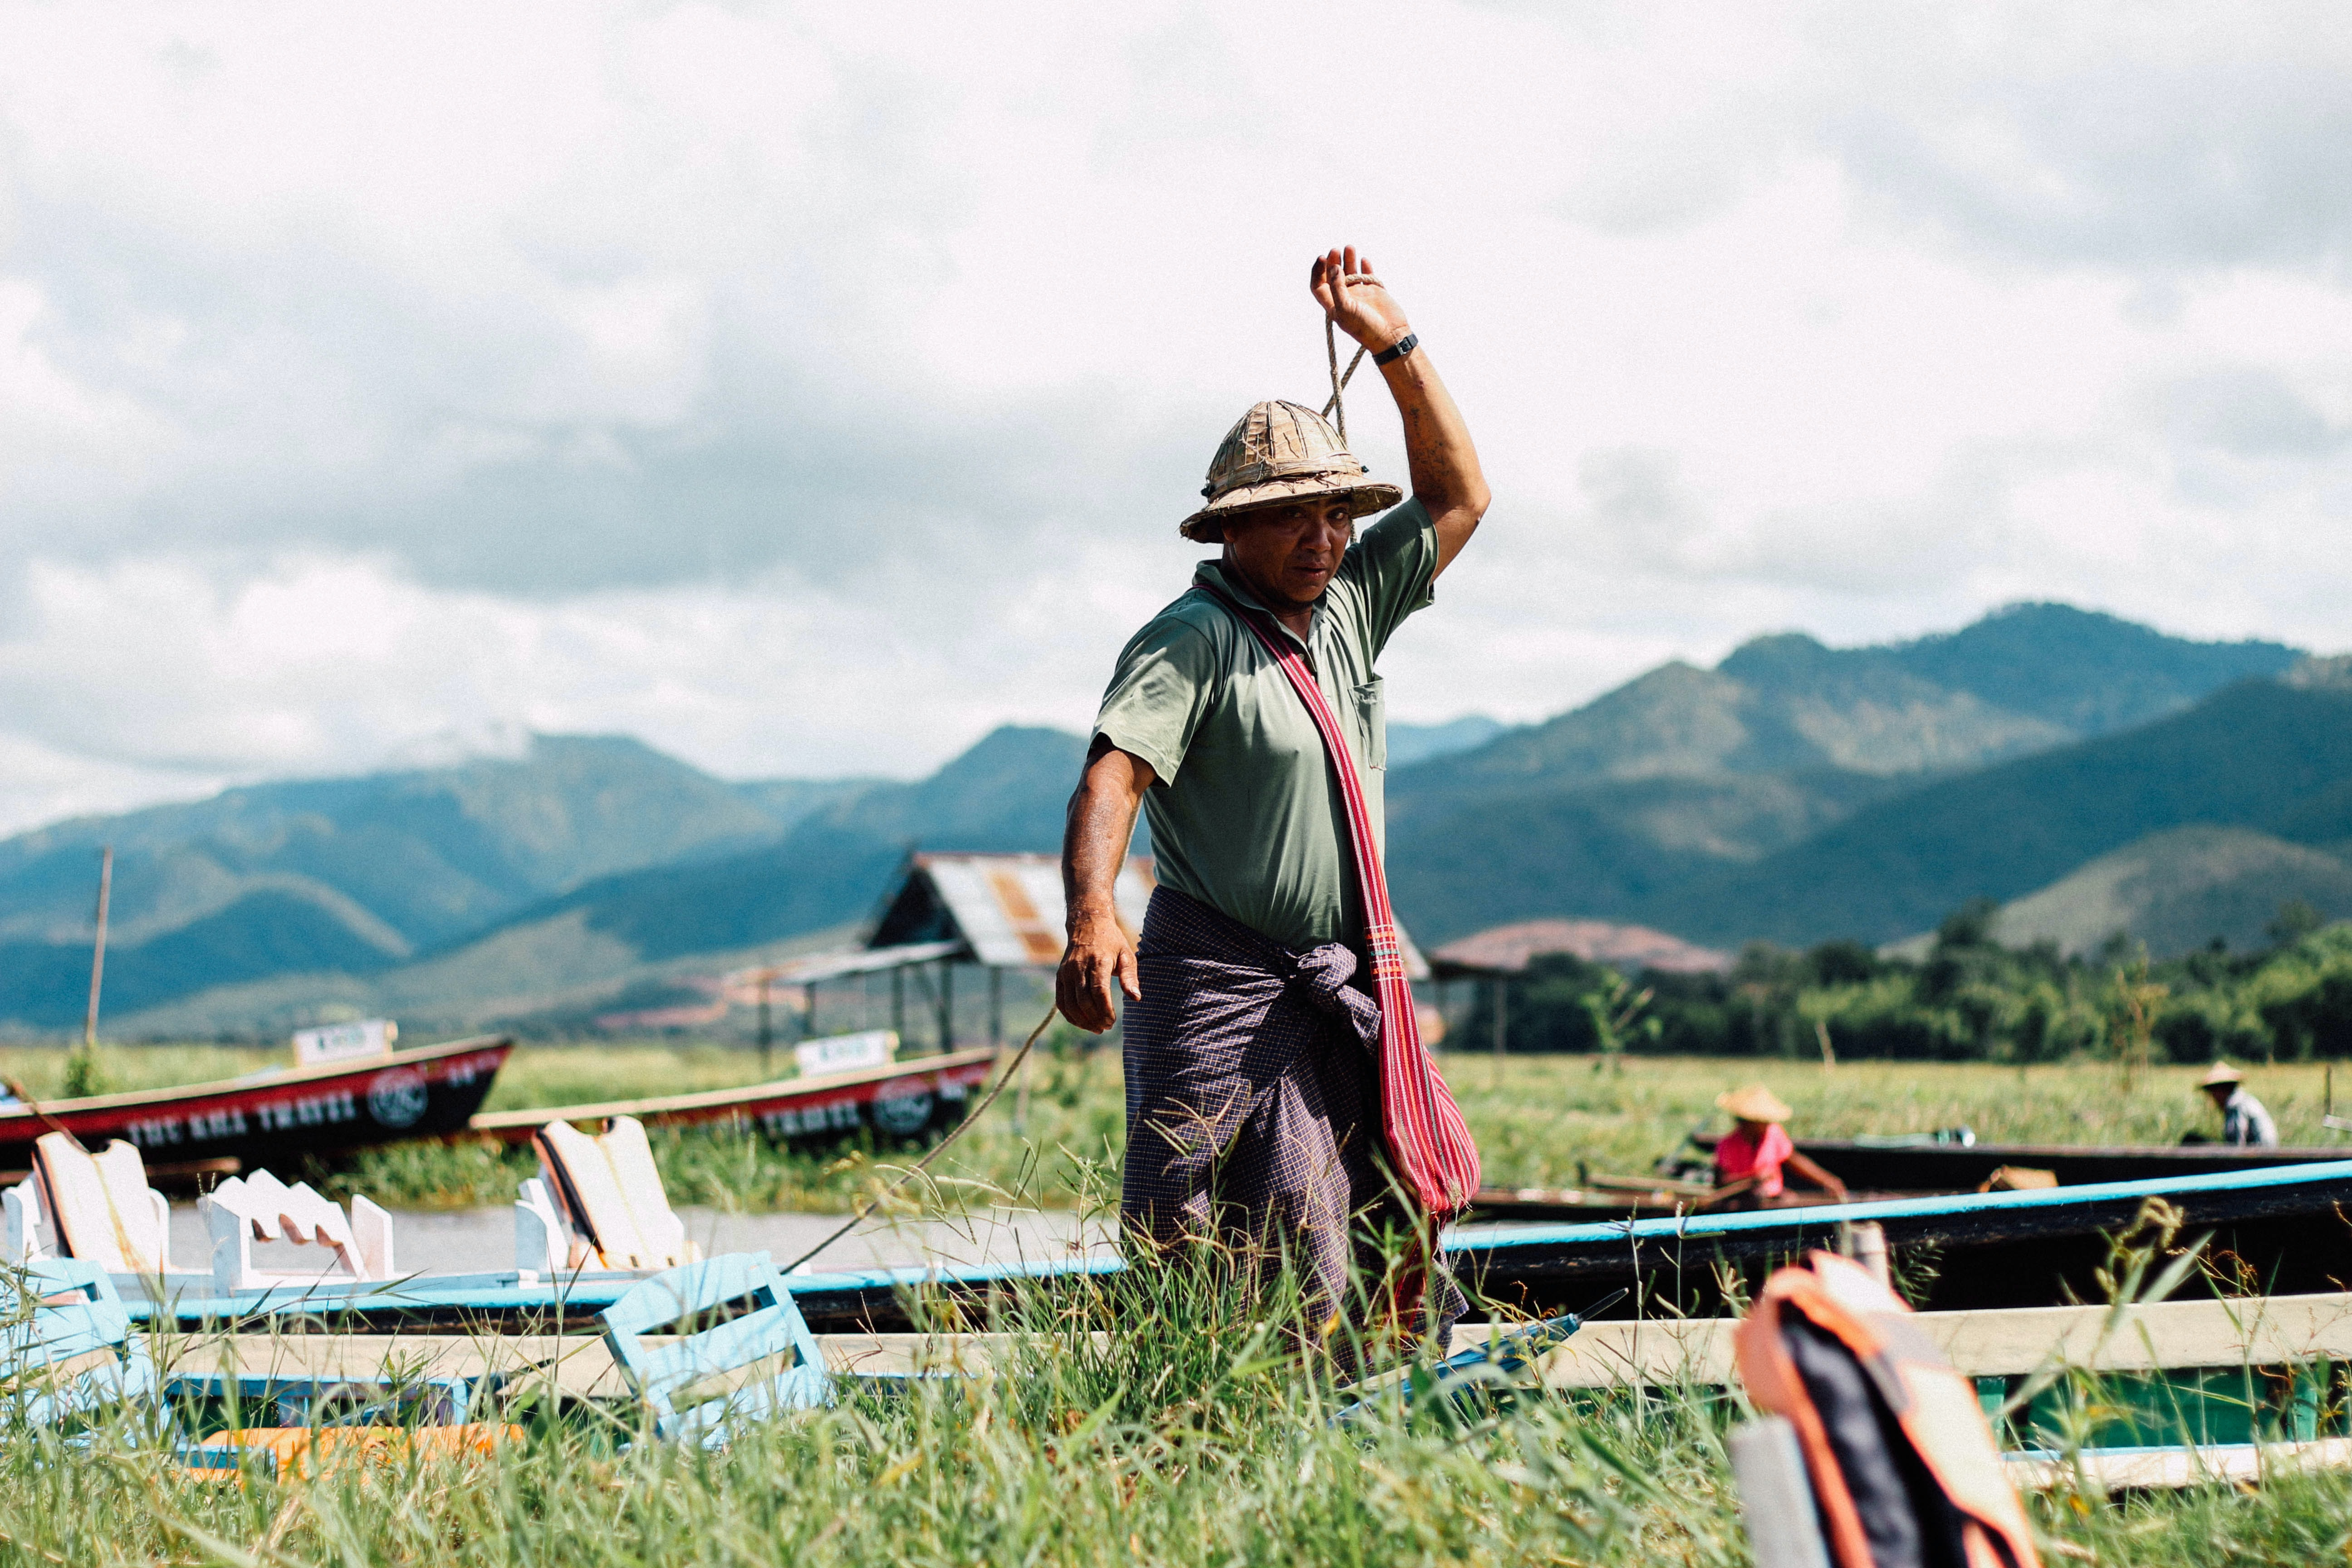 A fisherman wearing a hat preparing his fishing boat in Inle Lake